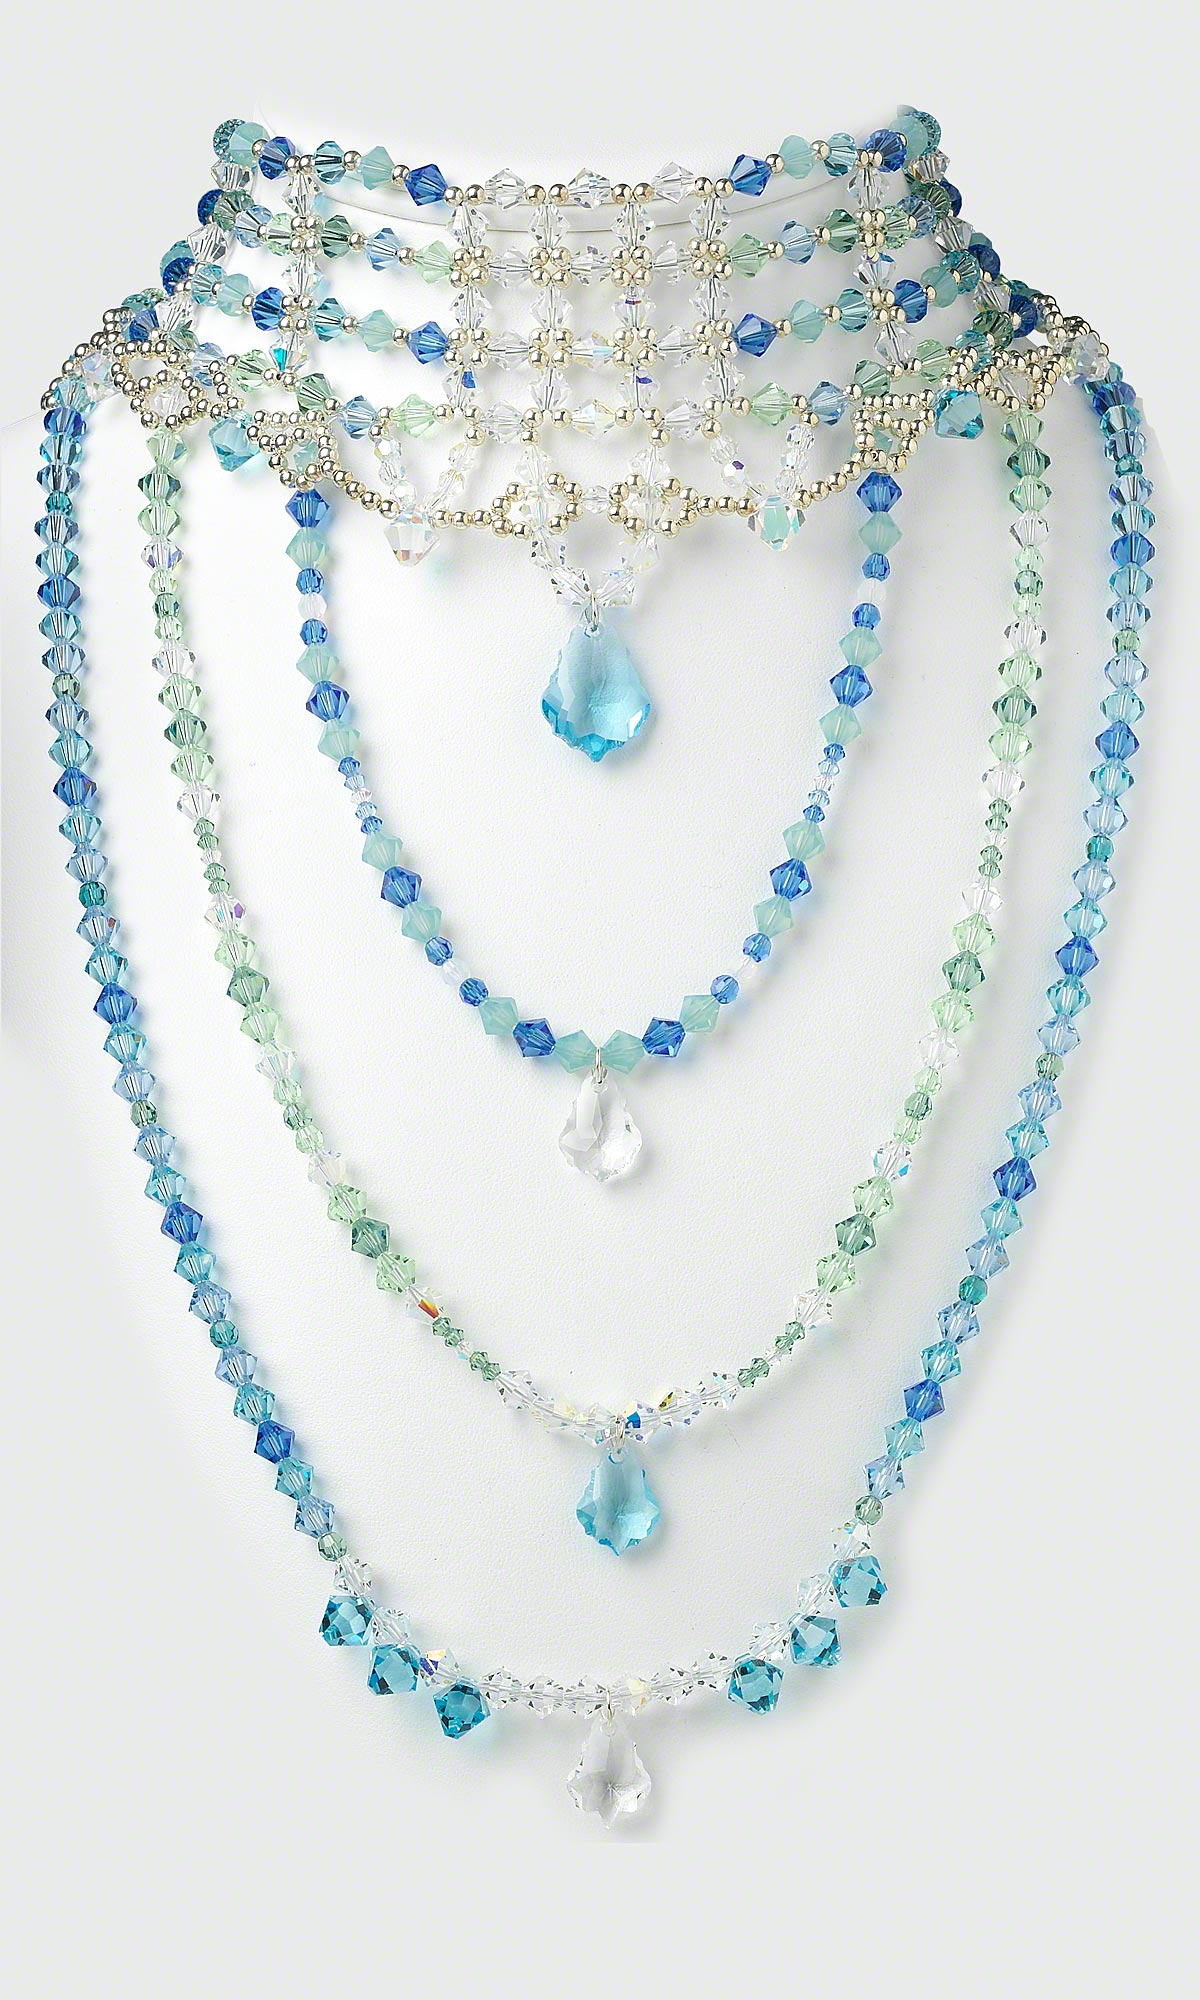 jewelry design multi strand necklace with swarovski crystal beads